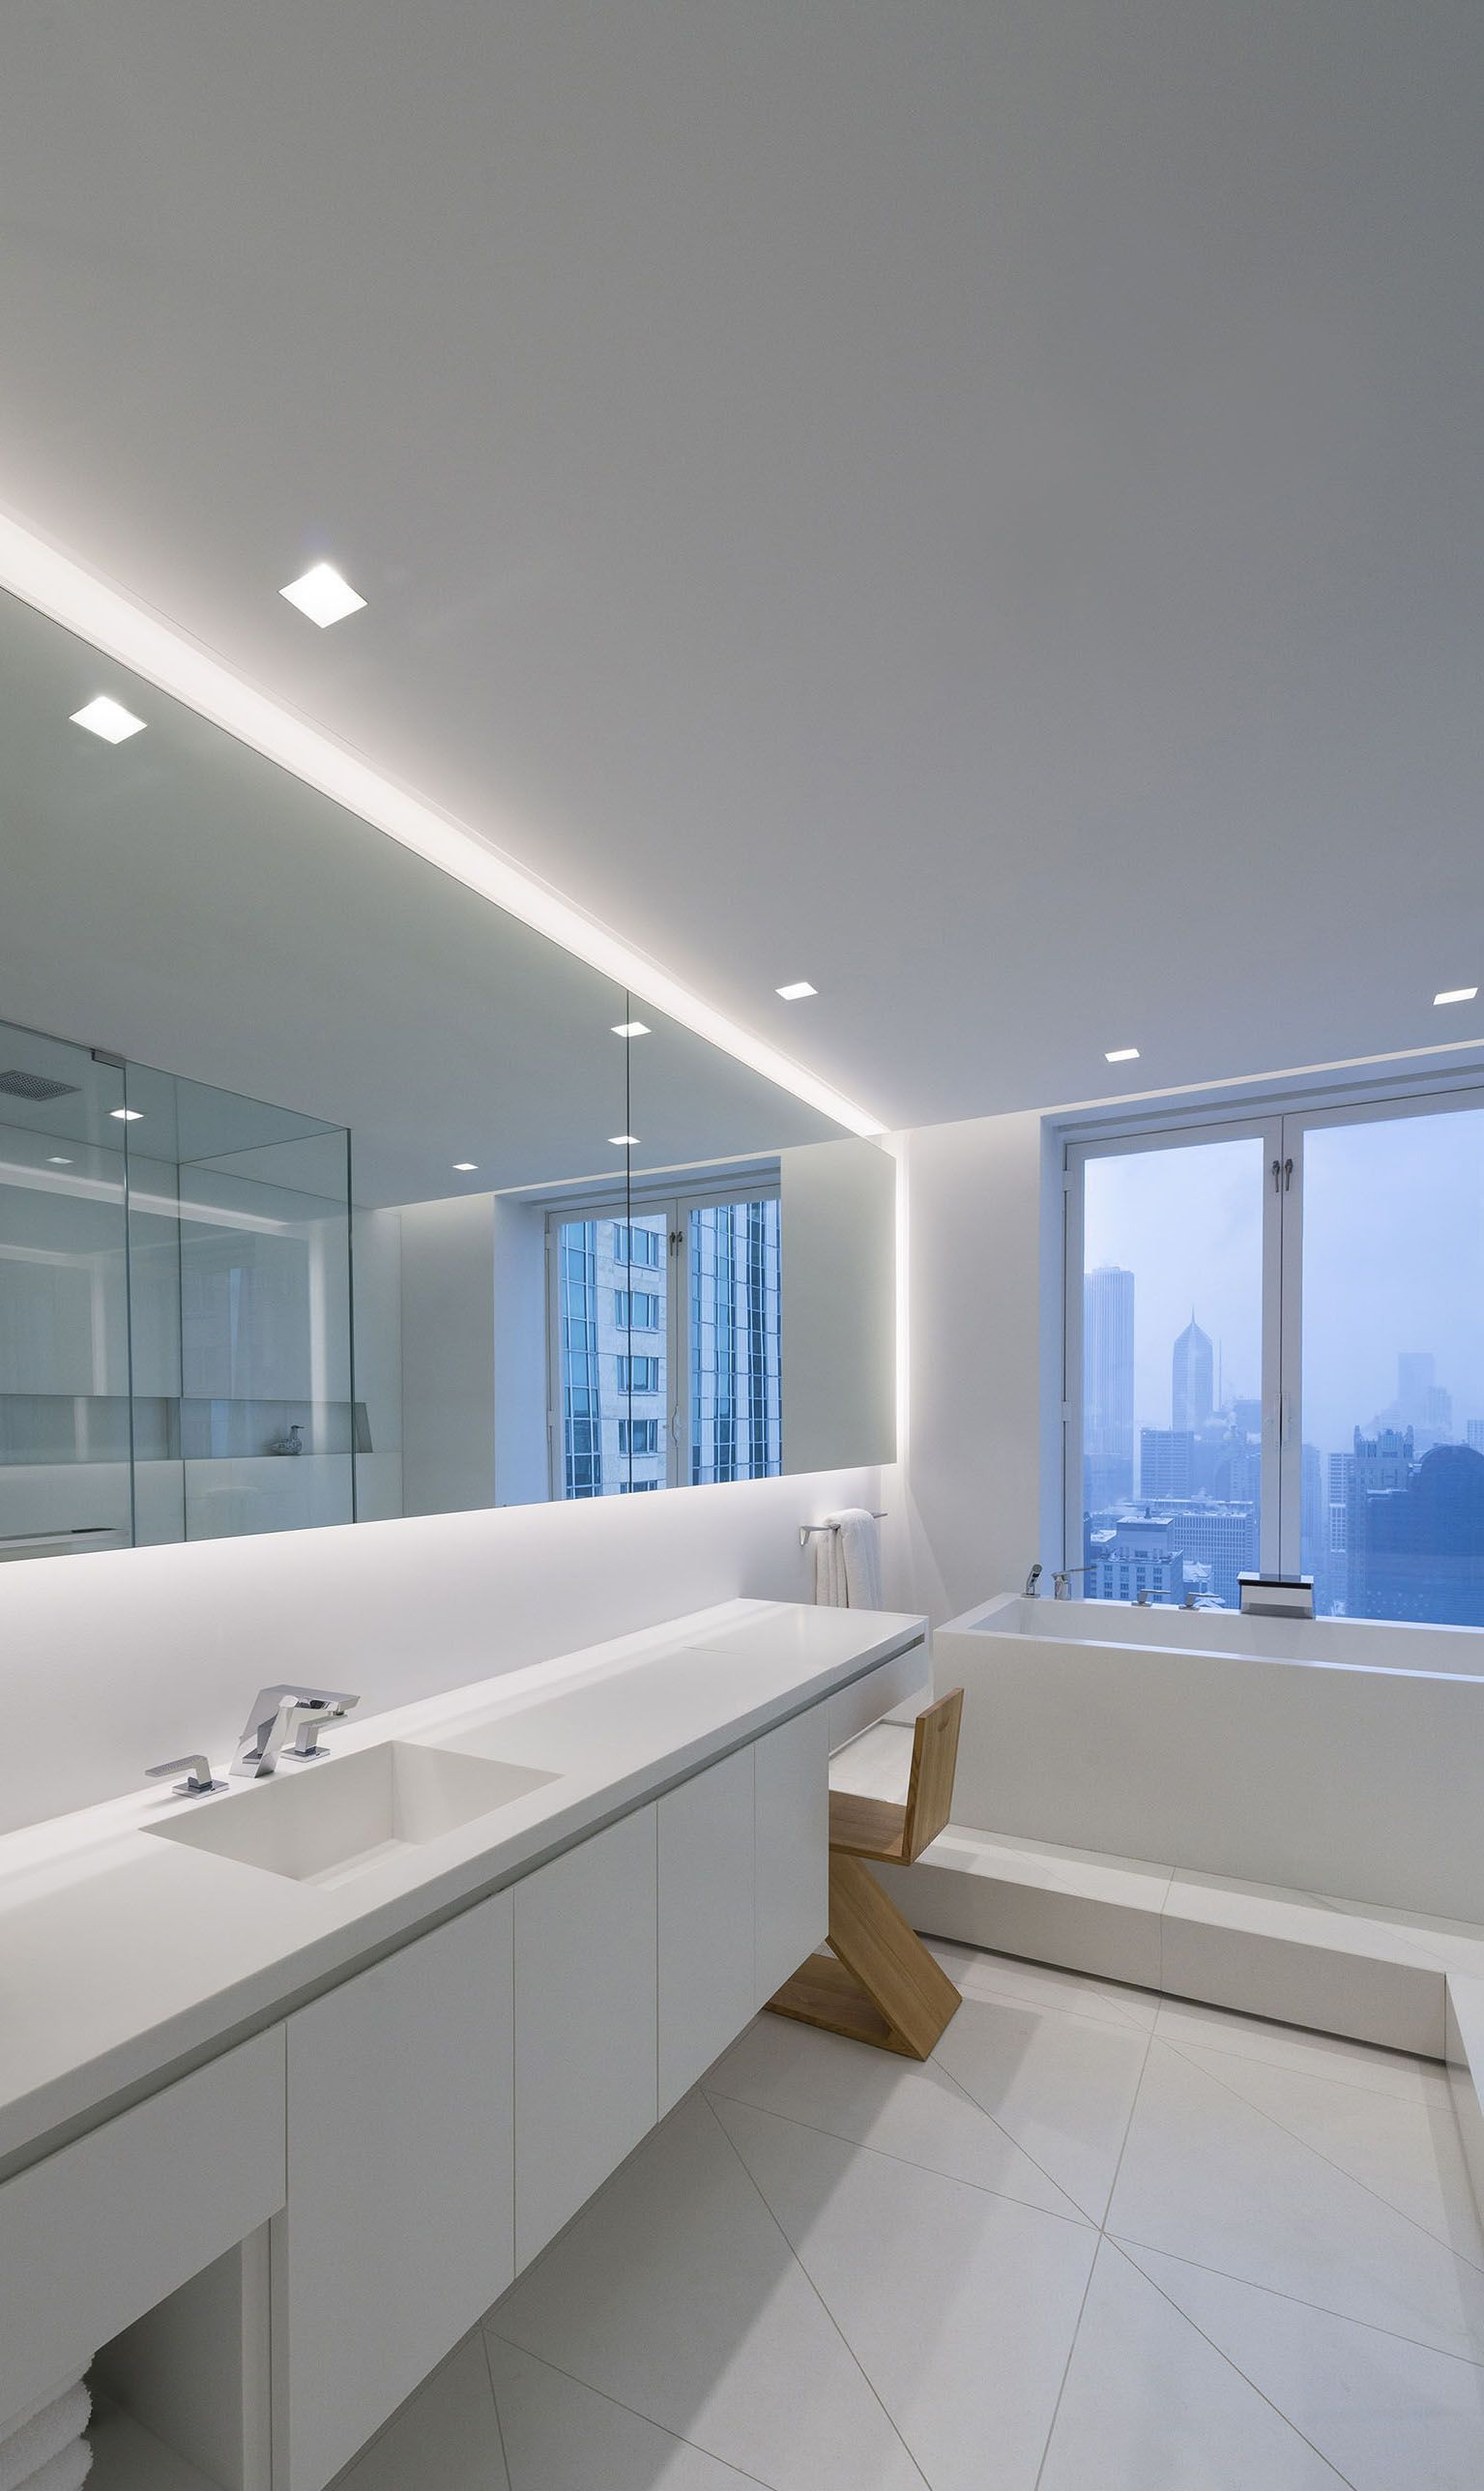 Bathroom Lighting Ideas Led a lighting idea for contempporary bathrooms | modern led lighting